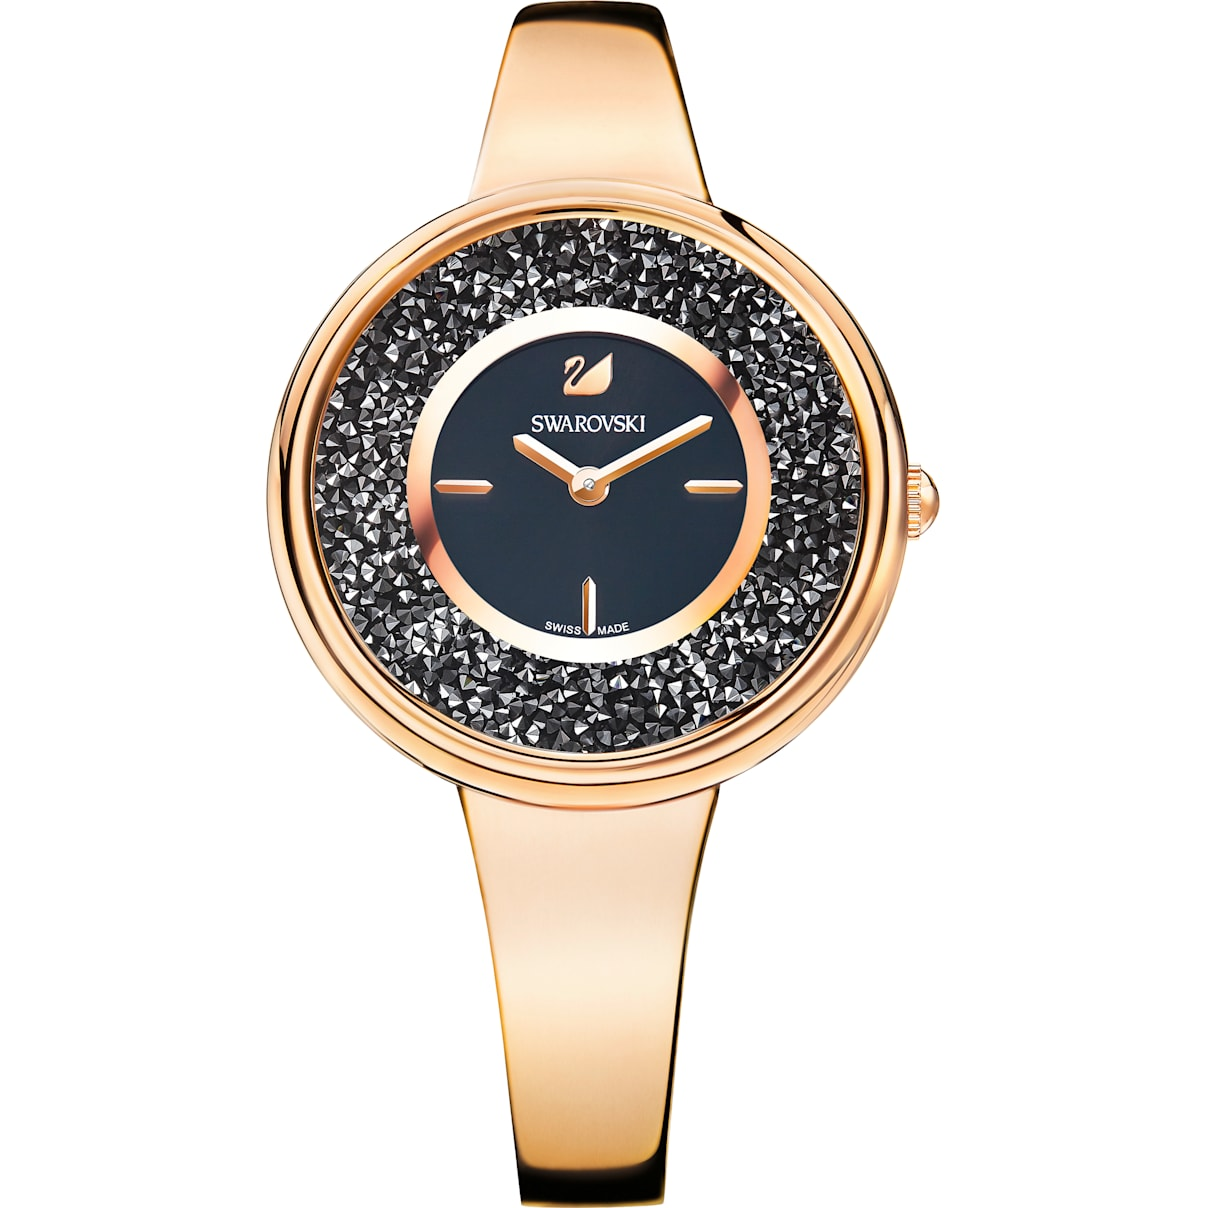 Swarovski Crystalline Pure Watch, Metal bracelet, Black, Rose-gold tone PVD